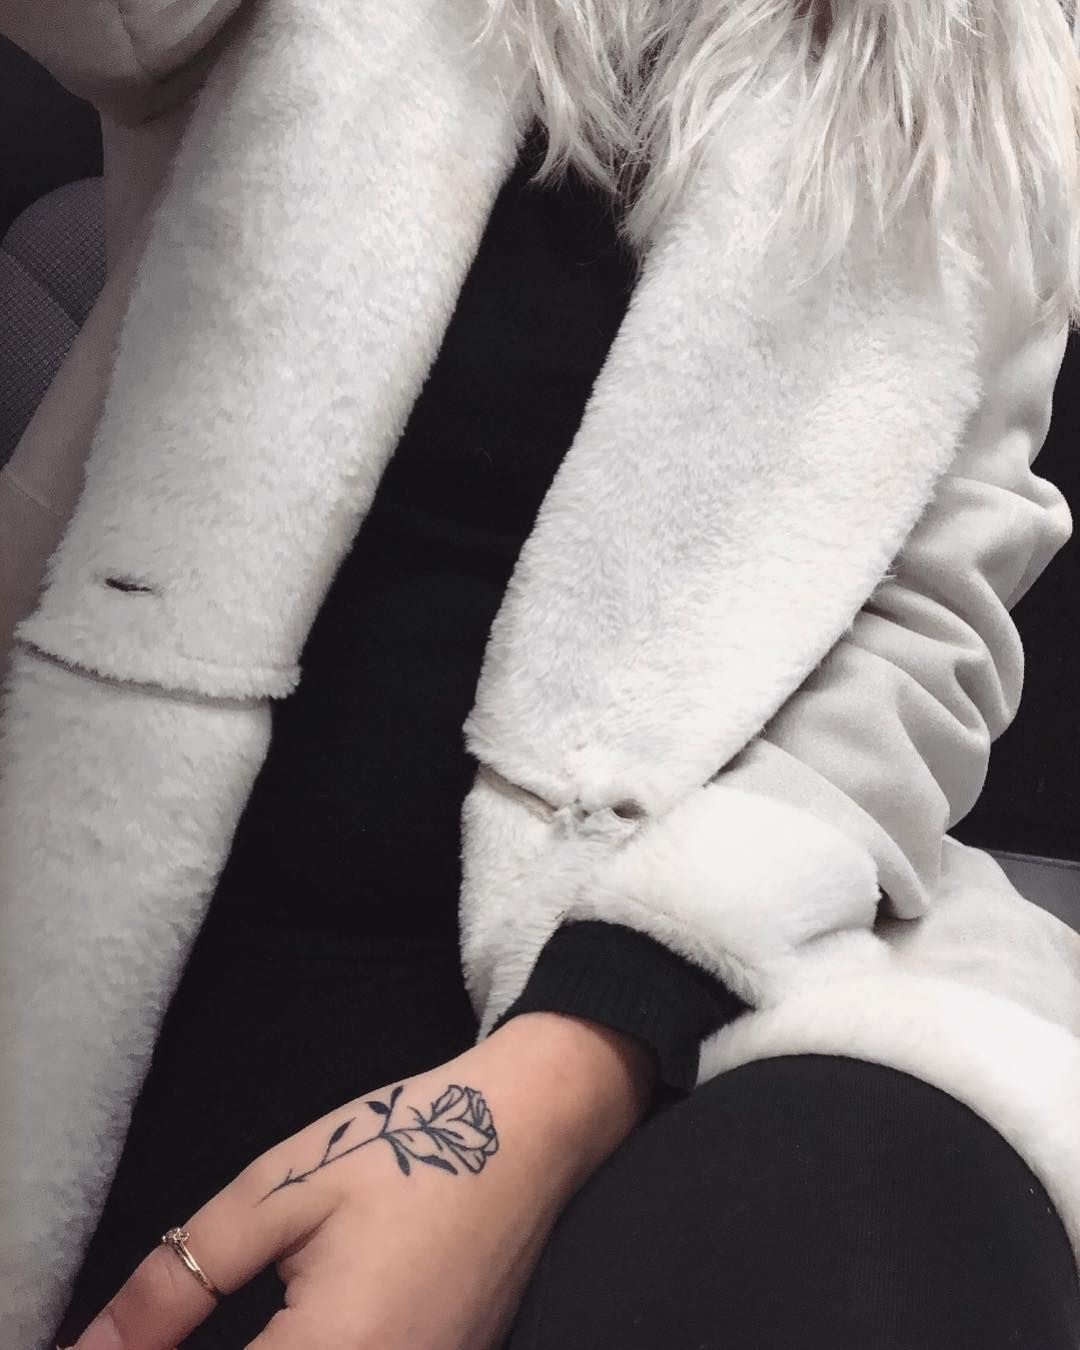 Classy Logo Ideas 2020 Pin by Tattoo Ideas 2020 on Tattoo Ideas 2019   2020 | Ootd classy